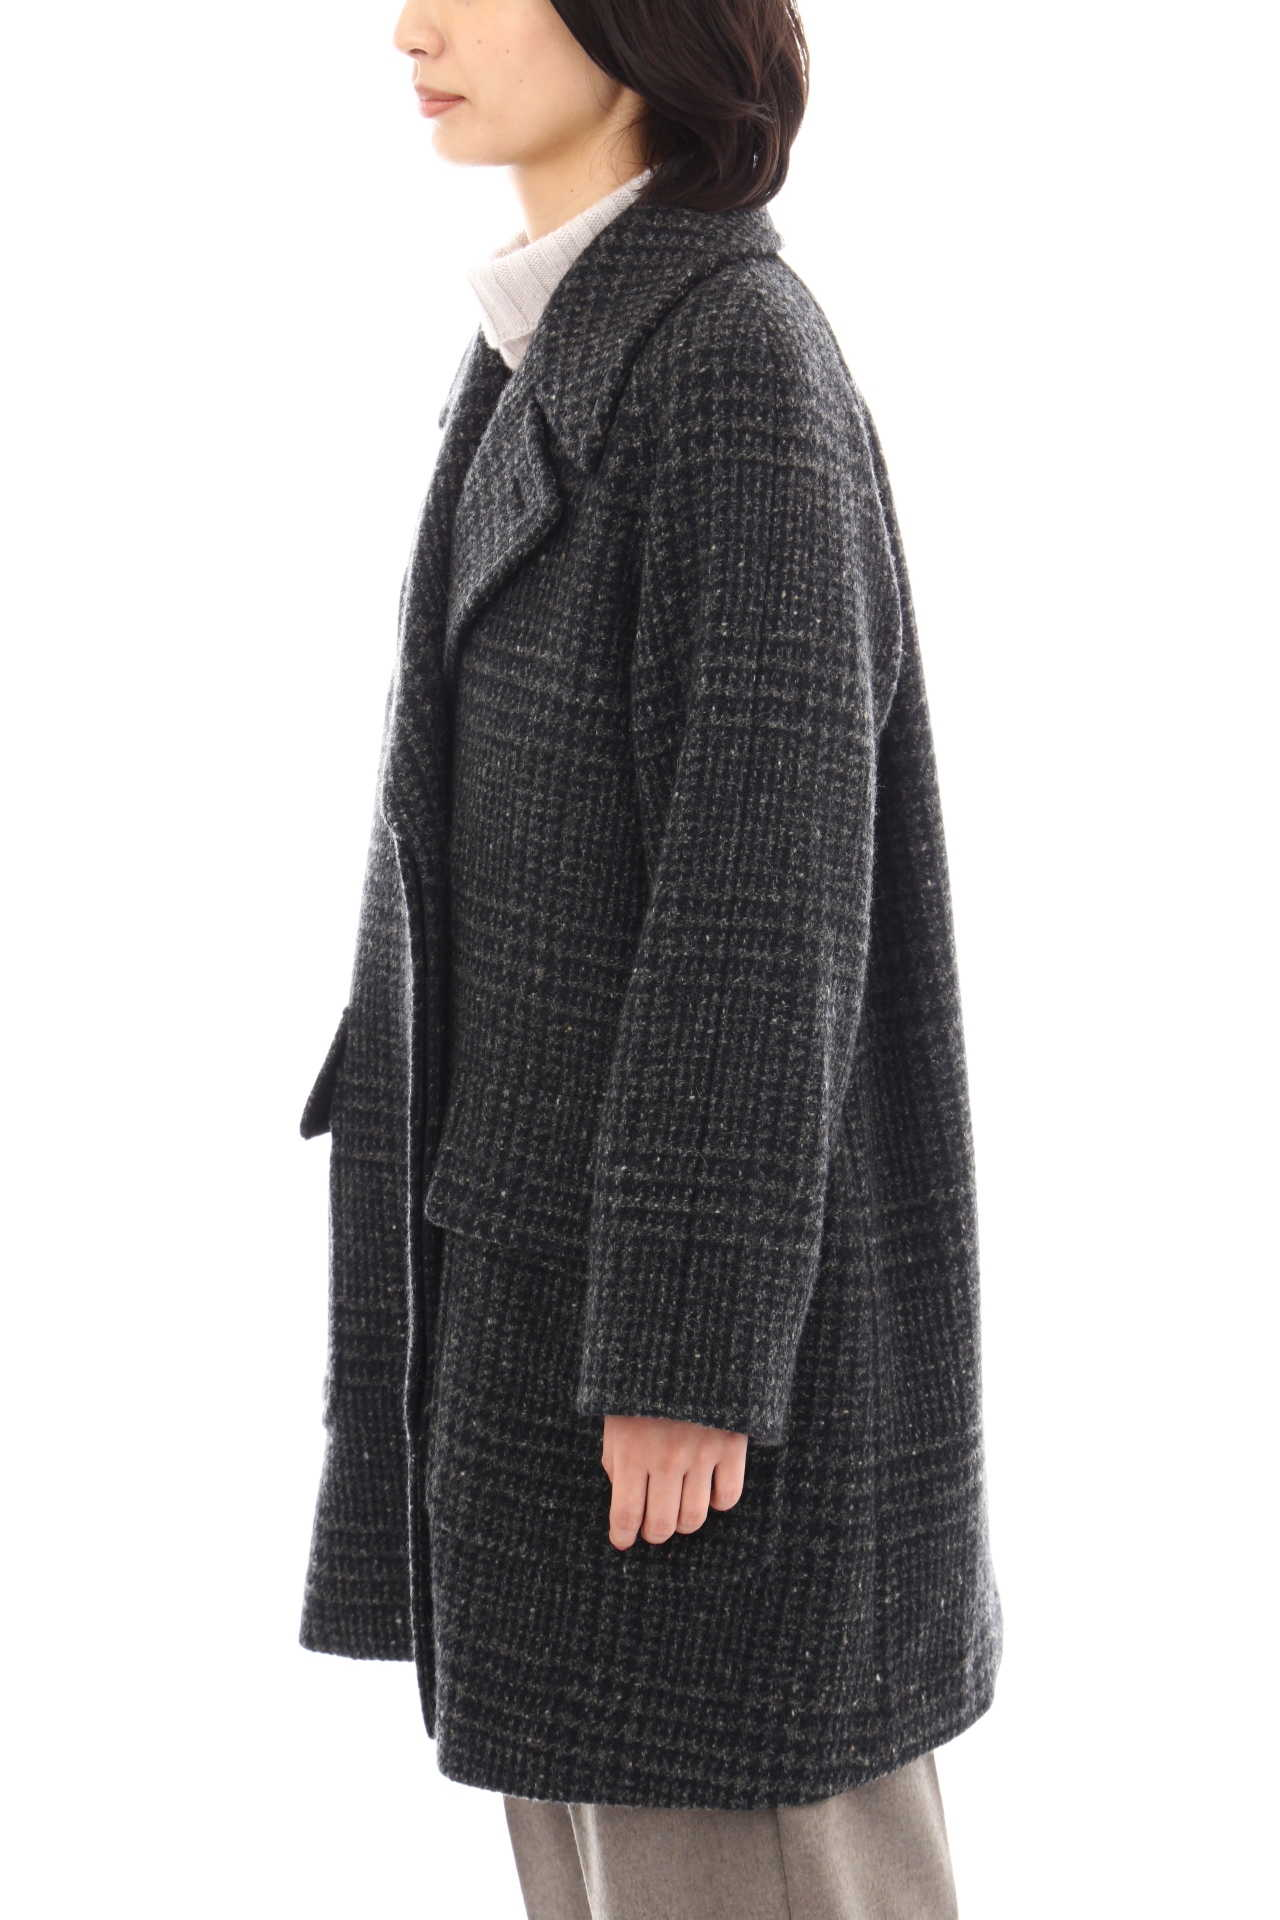 LARGE PRINCE OF WALES WOOL COATING7